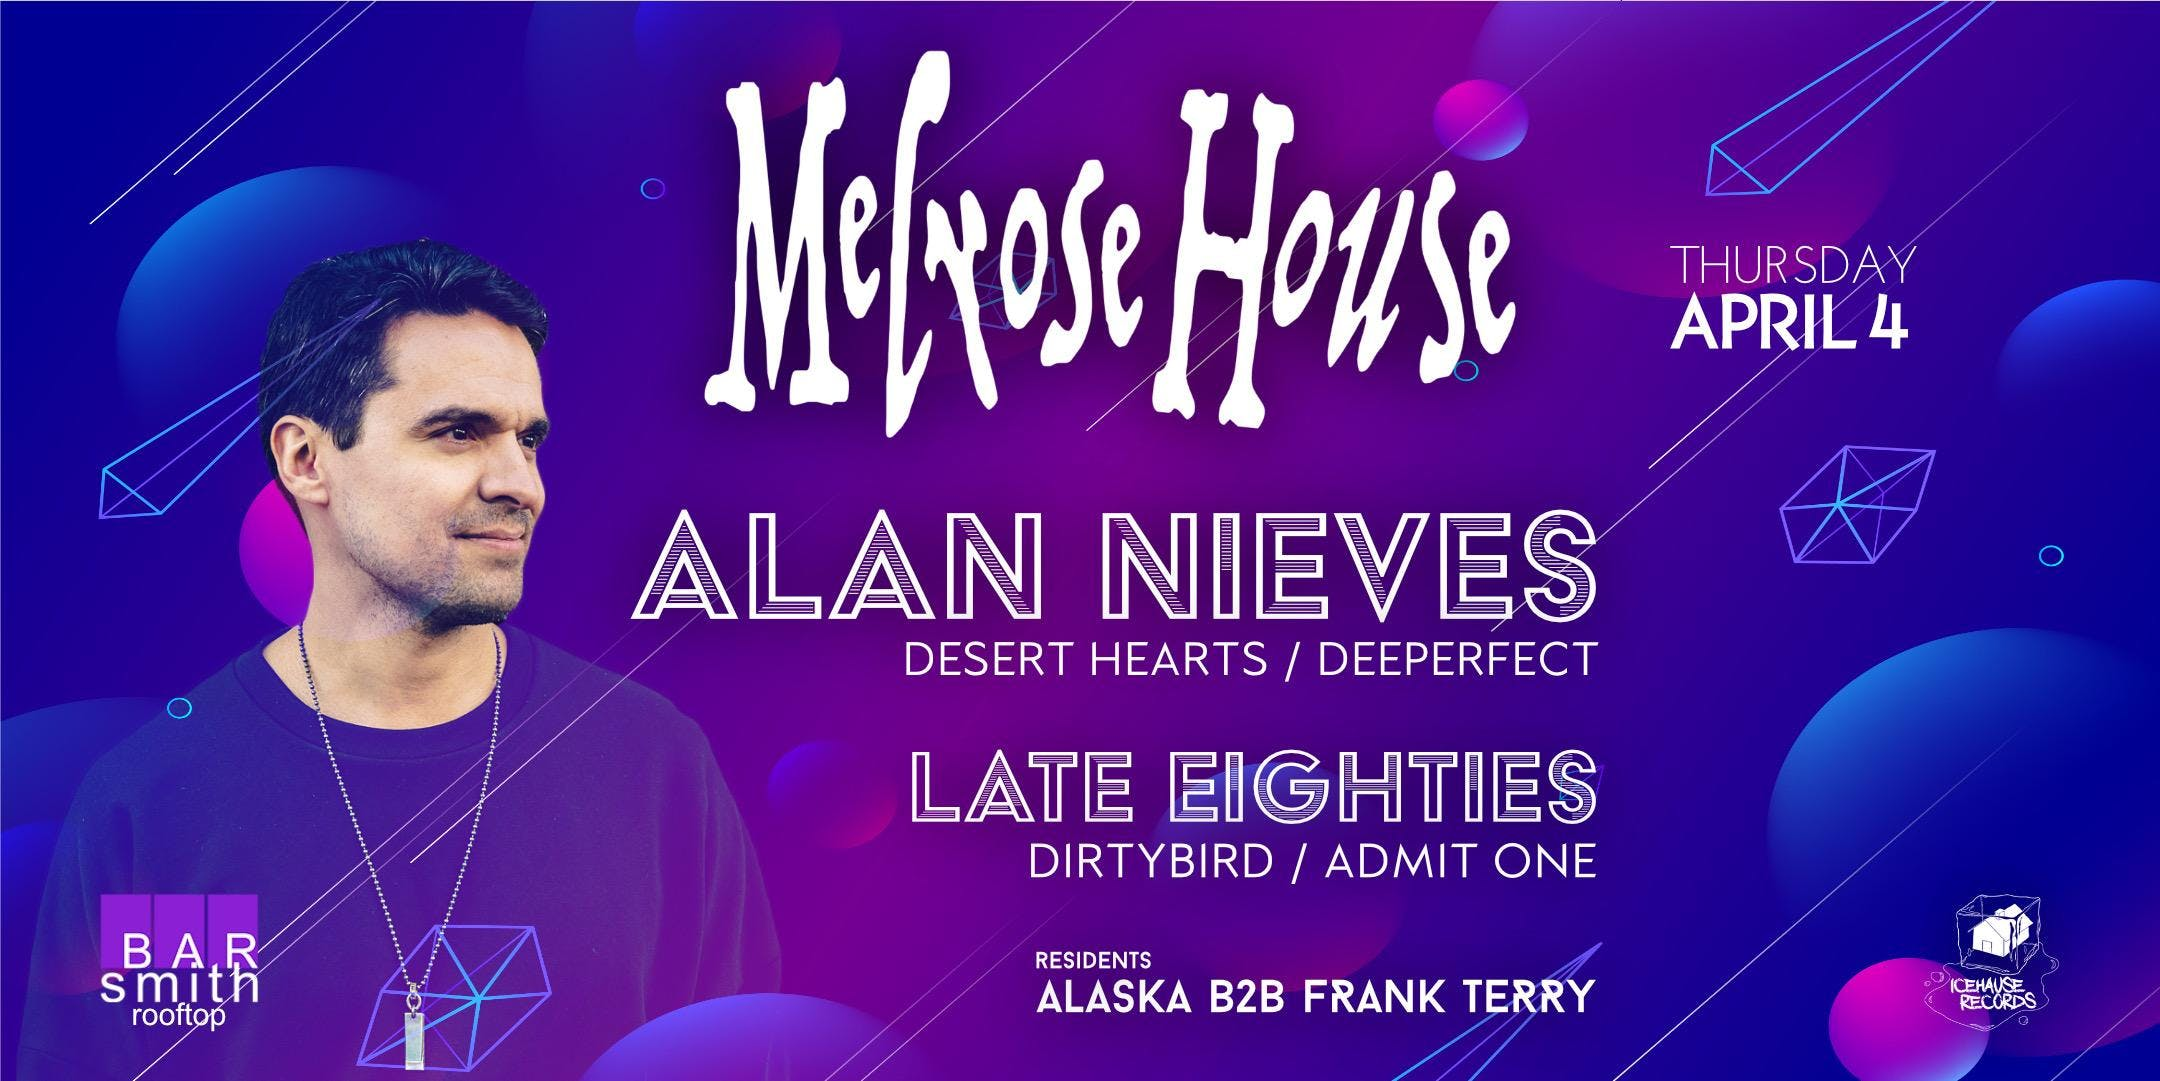 Melrose House with Alan Nieves and Late Eighties